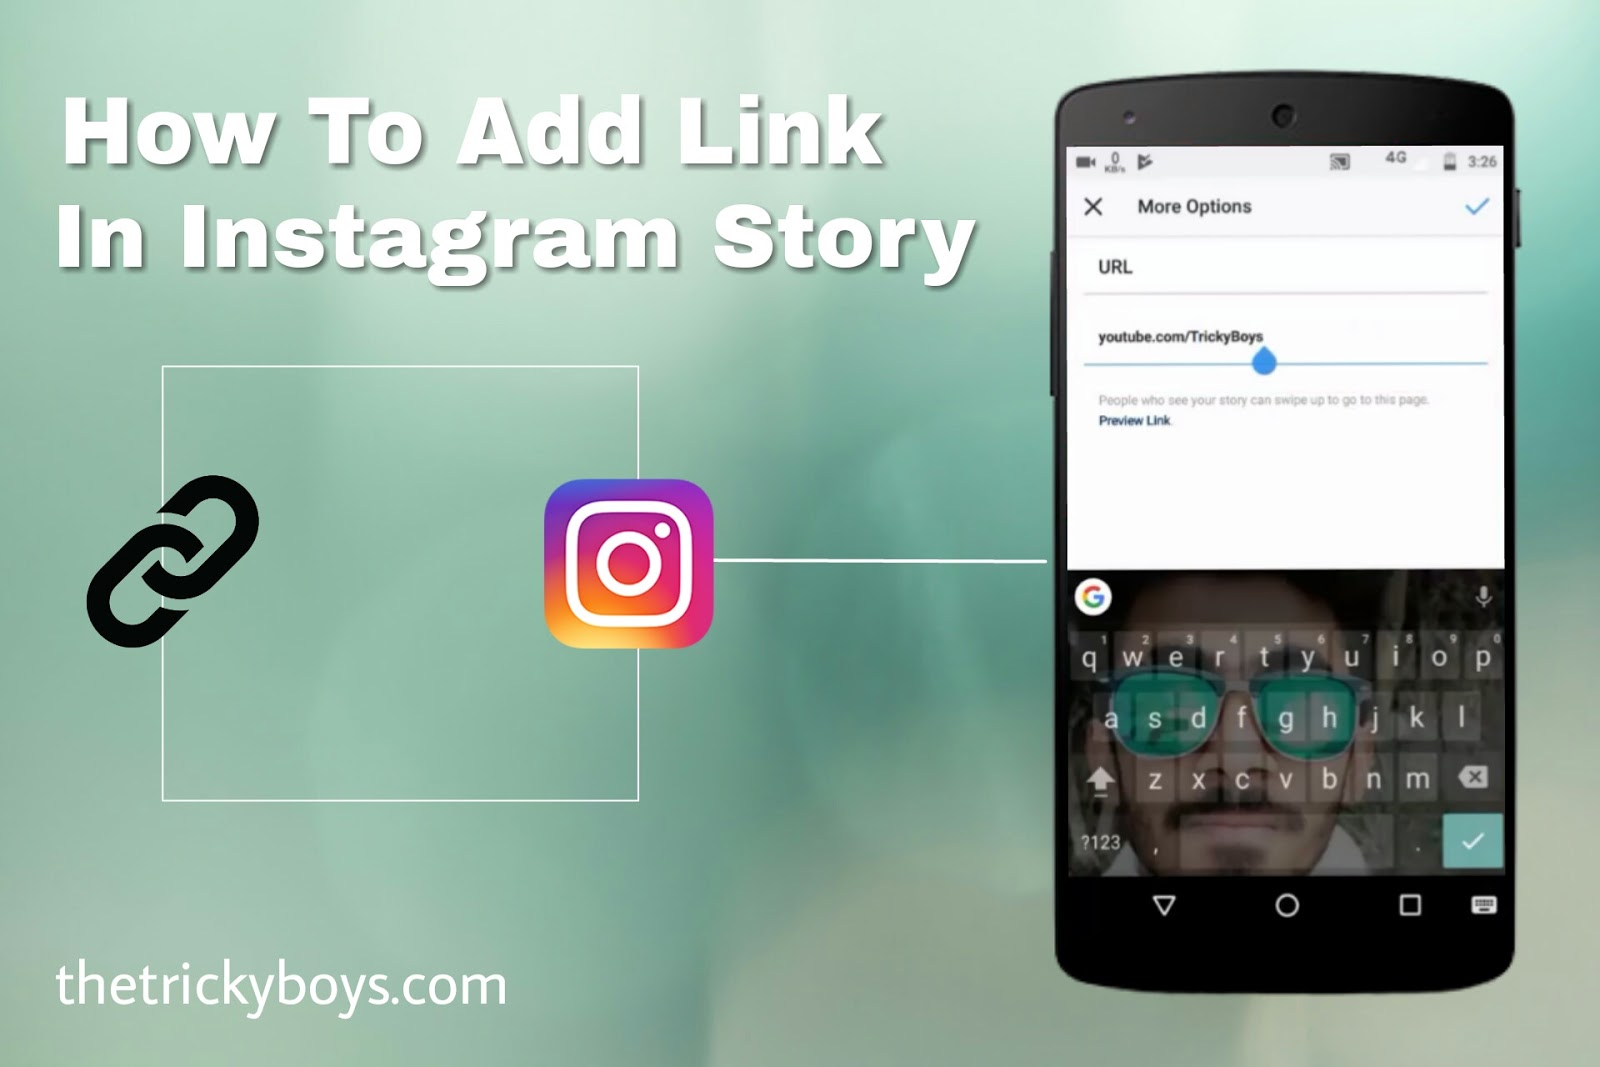 How to add link in instagram story instagram update tricky boys how to add link in instagram story instagram update ccuart Images